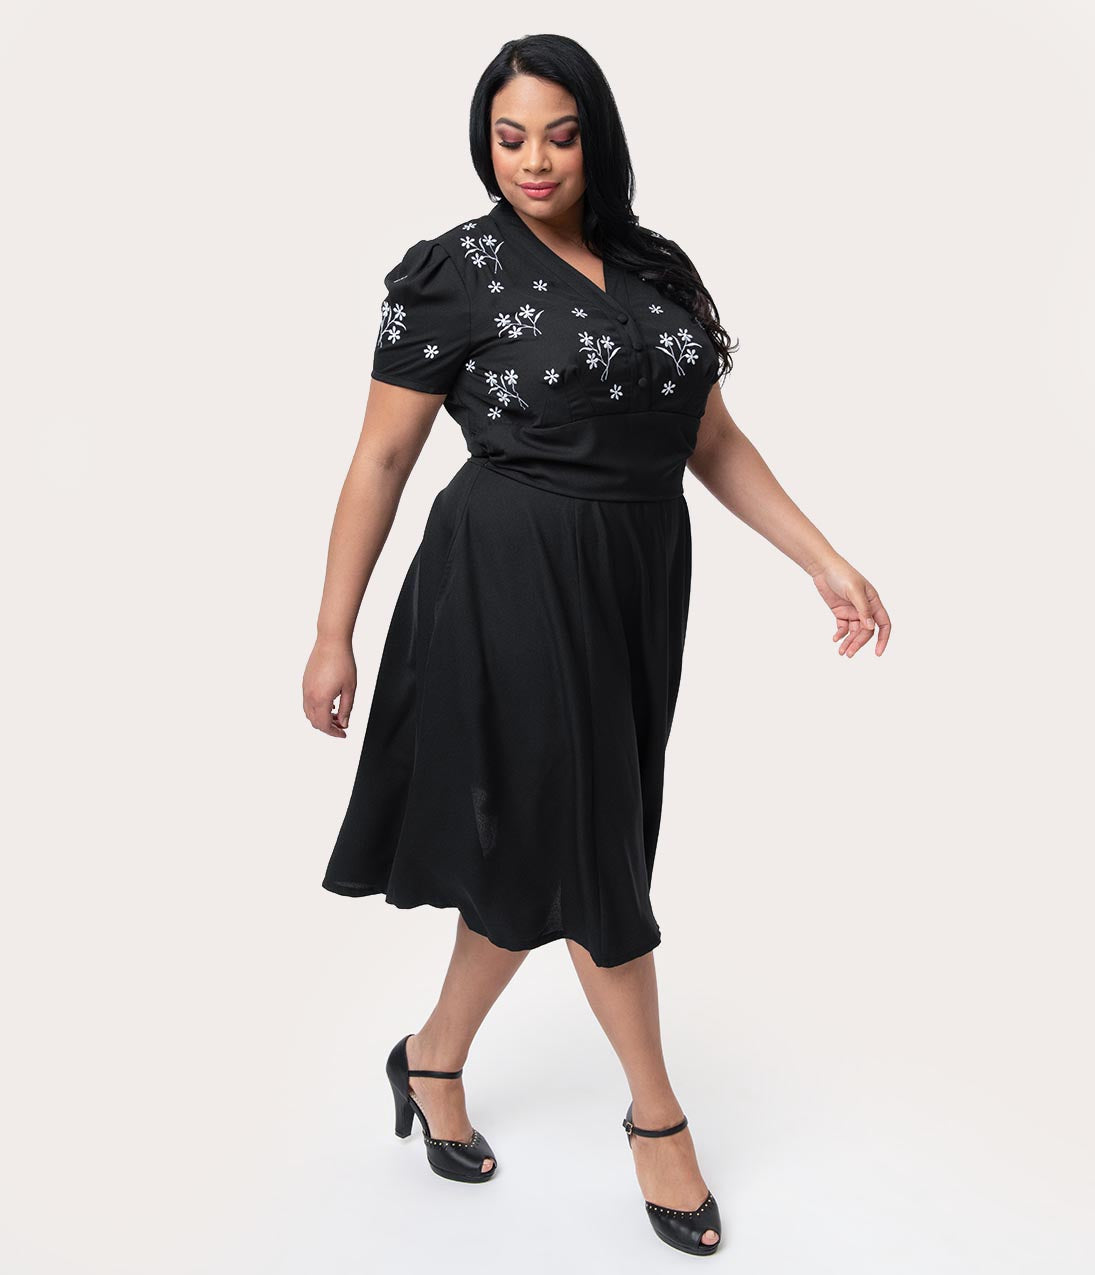 1940s Plus Size Fashion: Style Advice from 1940s to Today Plus Size 1940S Style Black  White Florals Short Sleeve Sadie Swing Dress $78.00 AT vintagedancer.com